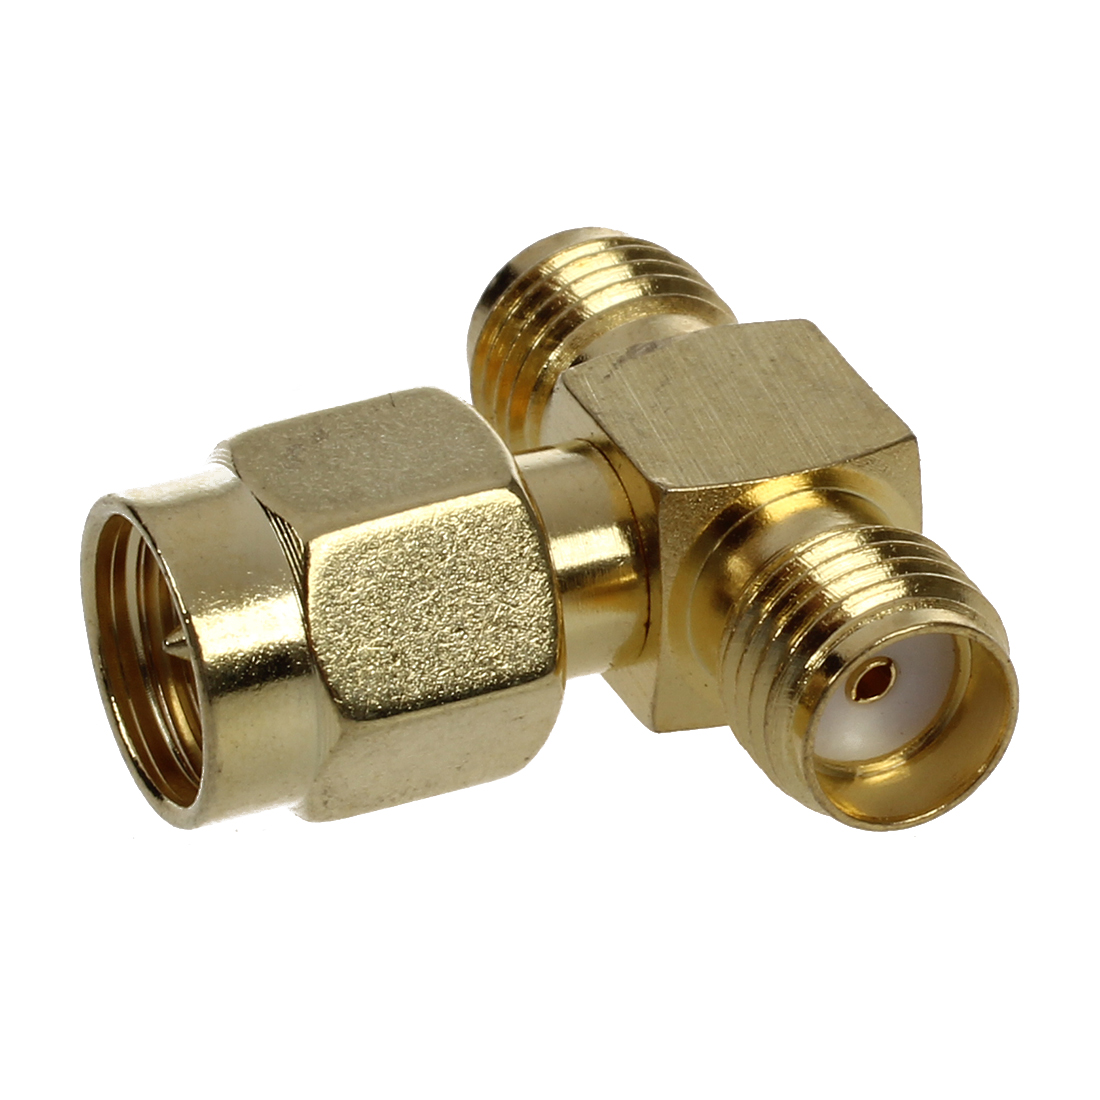 Rf Cable Connectors : Sma male to two female triple t rf adapter connector